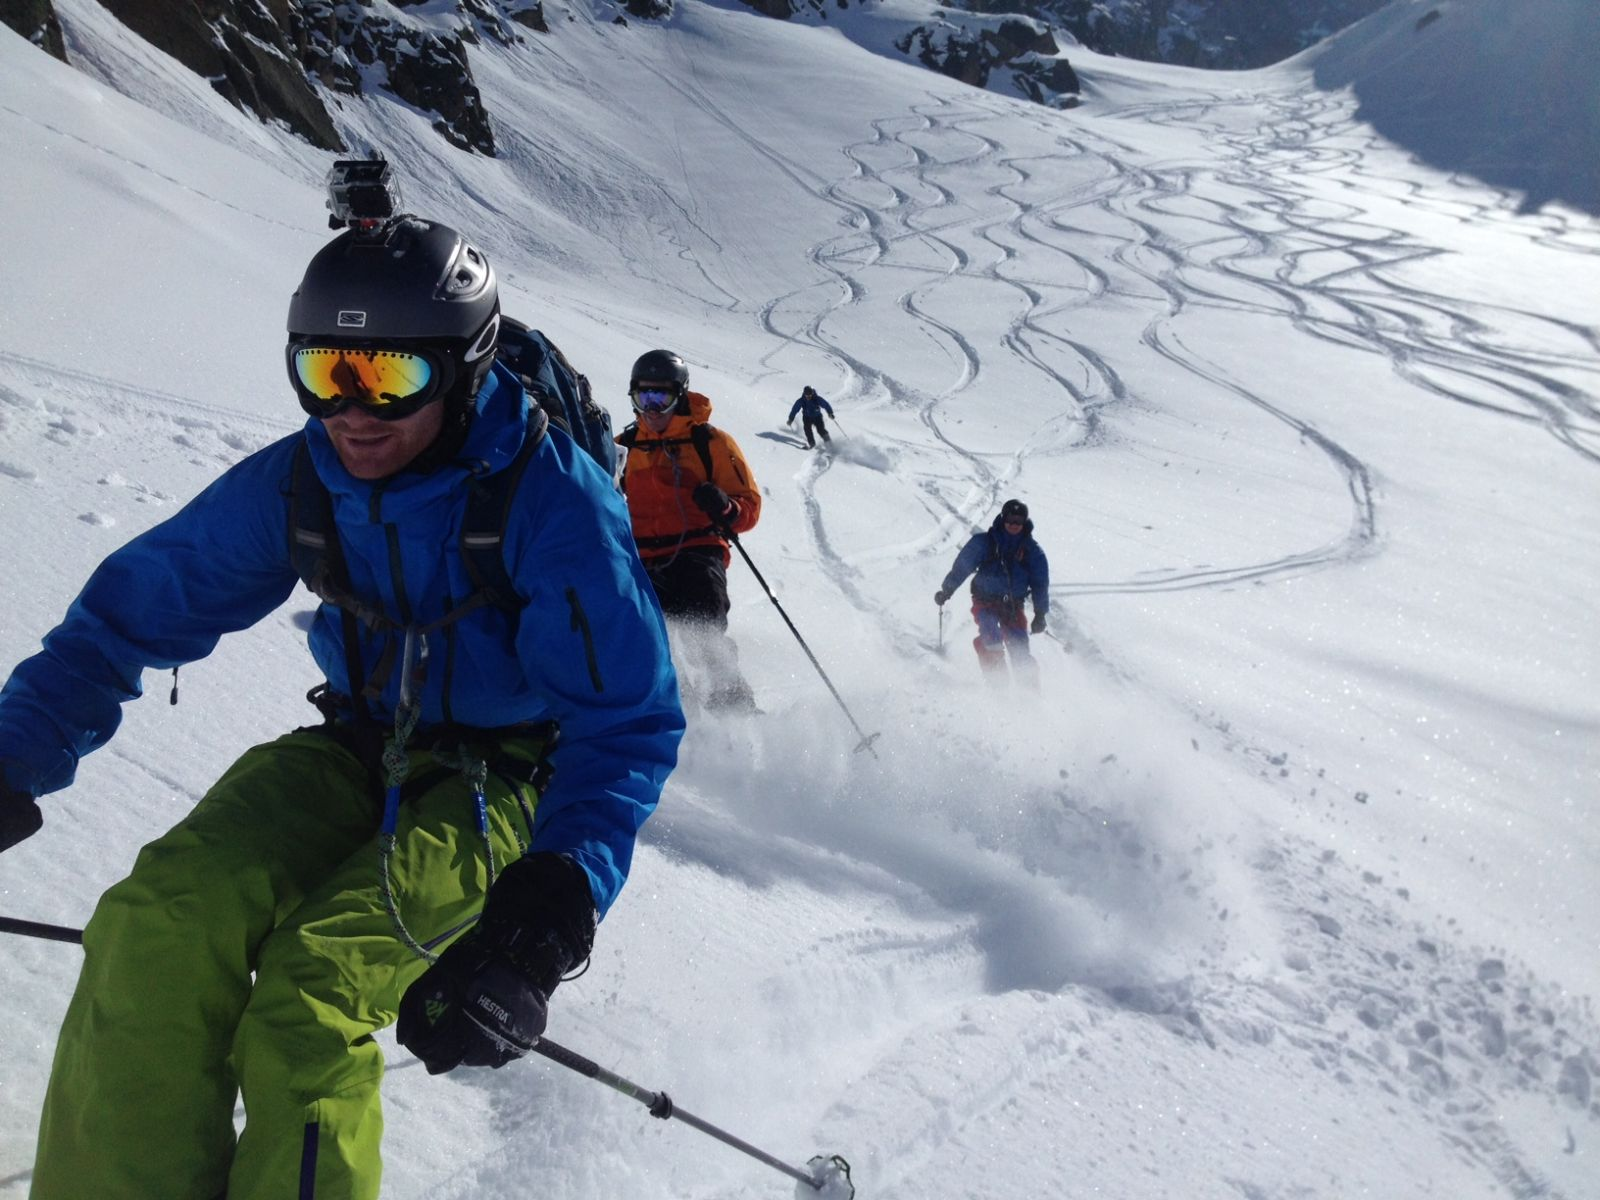 Snowboarding, skiing and mountaineering are some of the popular sports in Switzerland.